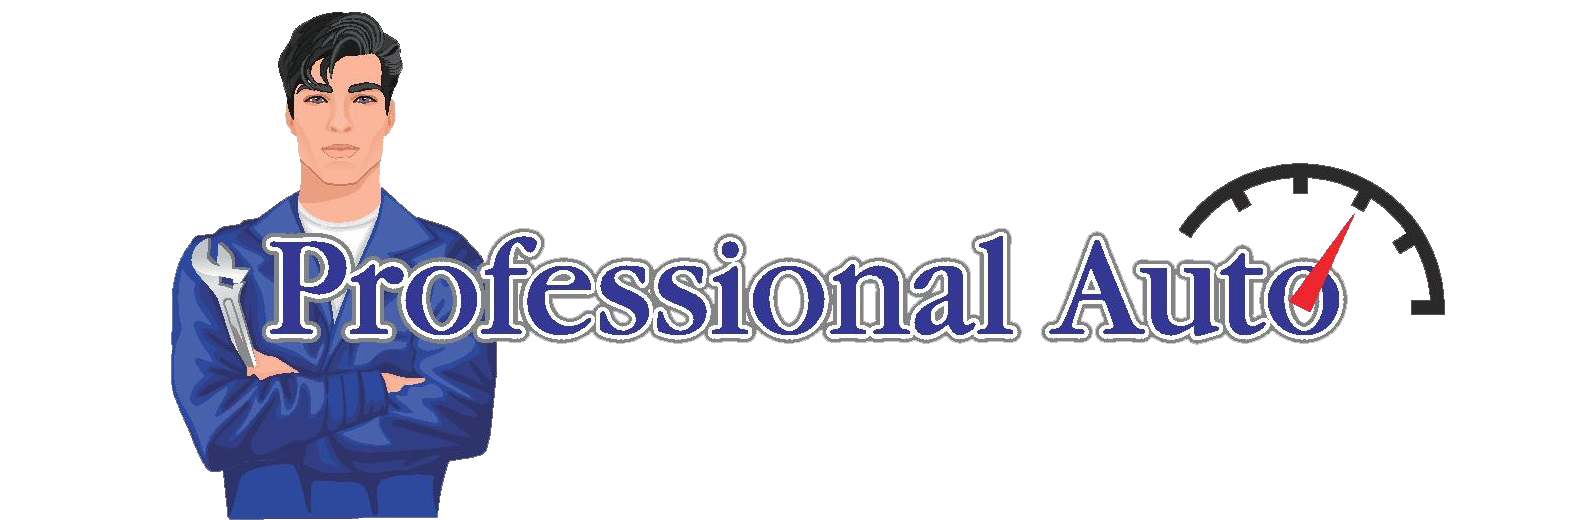 Professional Auto Diagnostics & Repairs, Inc.